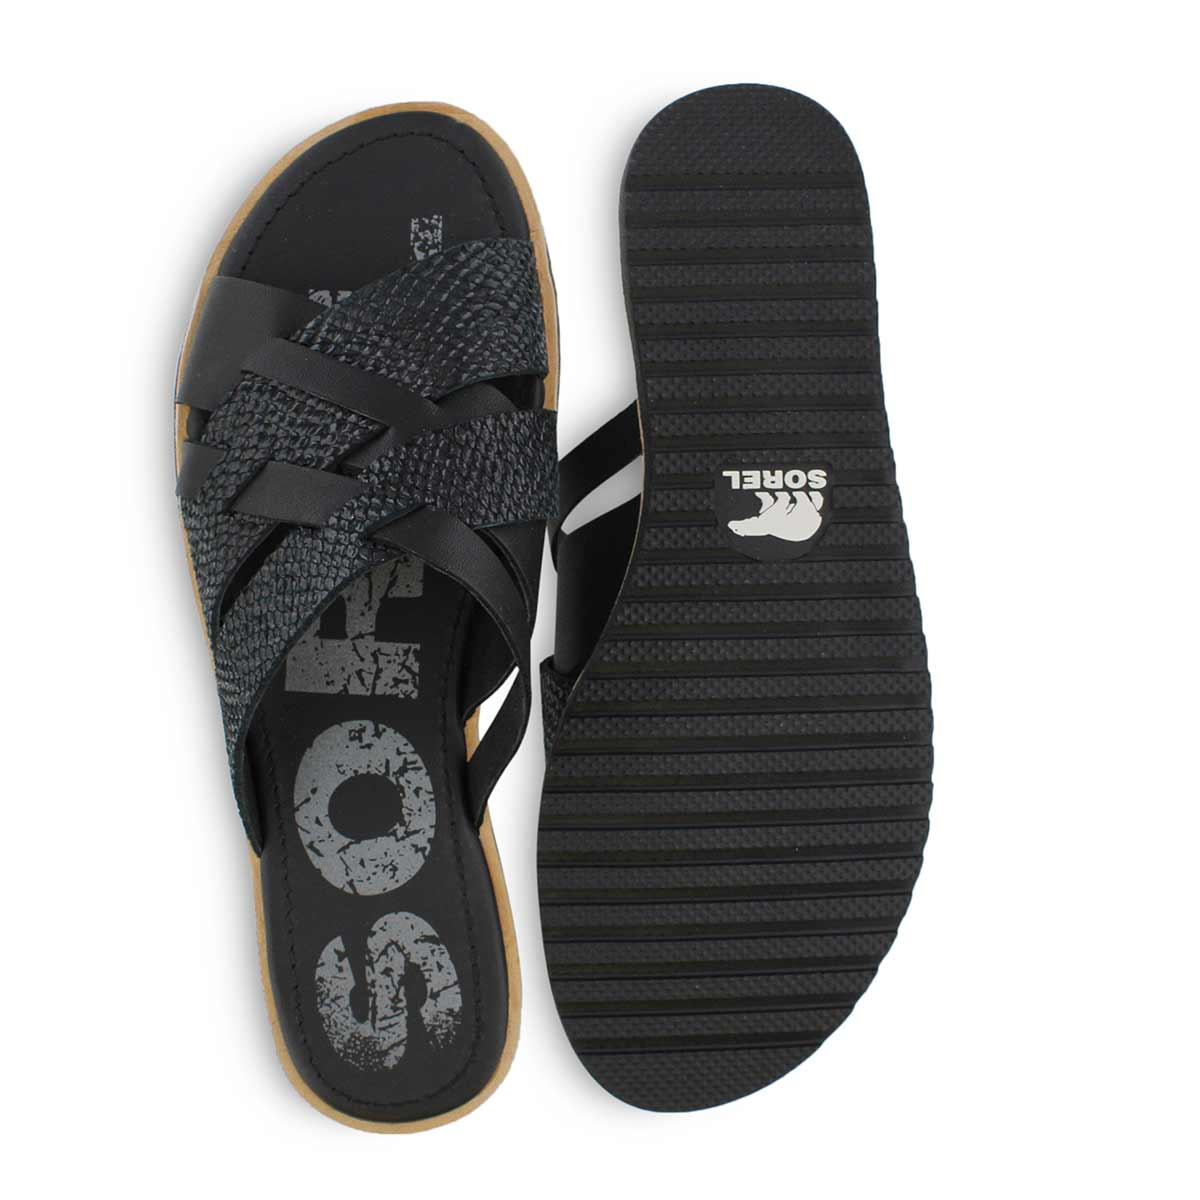 Lds Ella black casual slide sandal